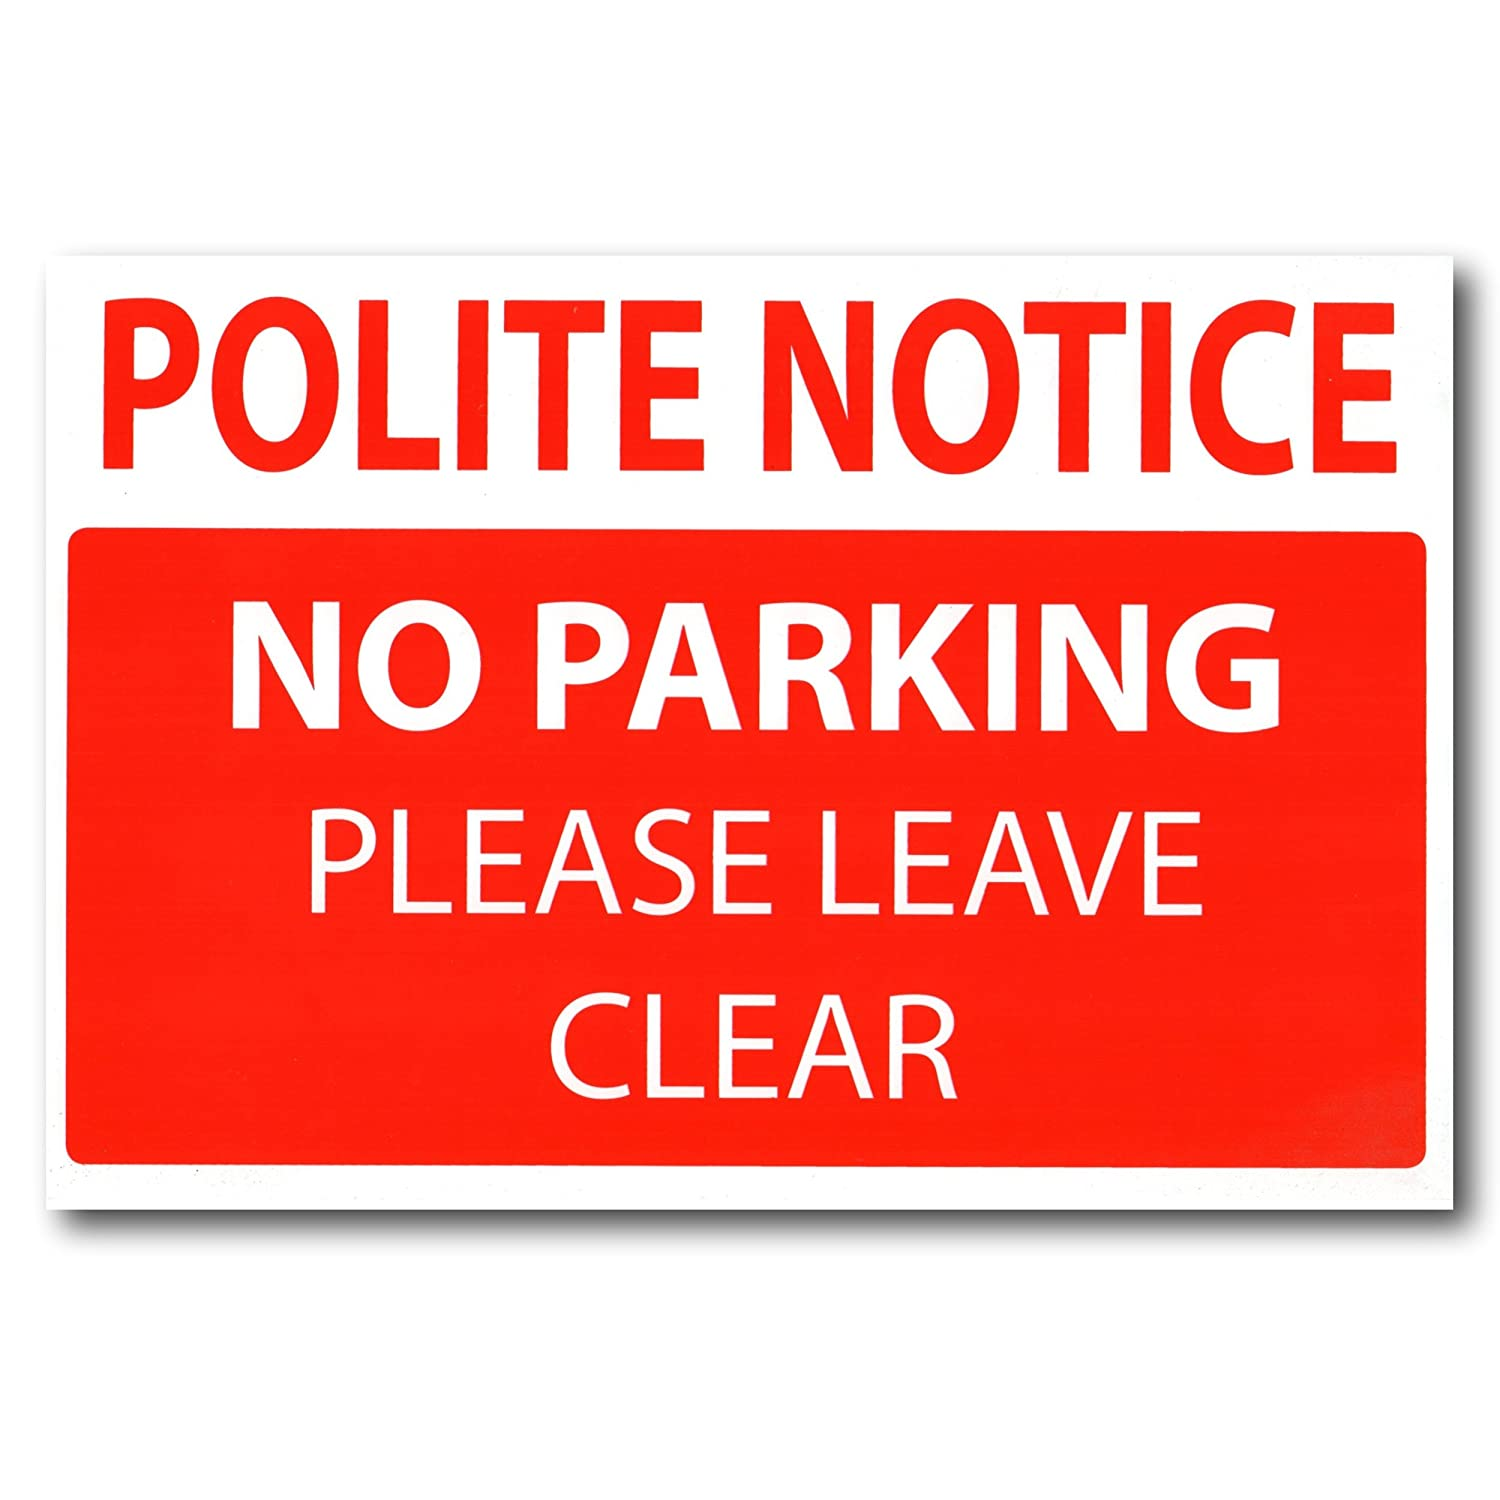 EPOSGEAR® 'Polite Notice - No Parking - Please Leave Clear' Rigid Plastic Safety Security Sign - 300mm x 200mm (1 Sign, Without Holes)